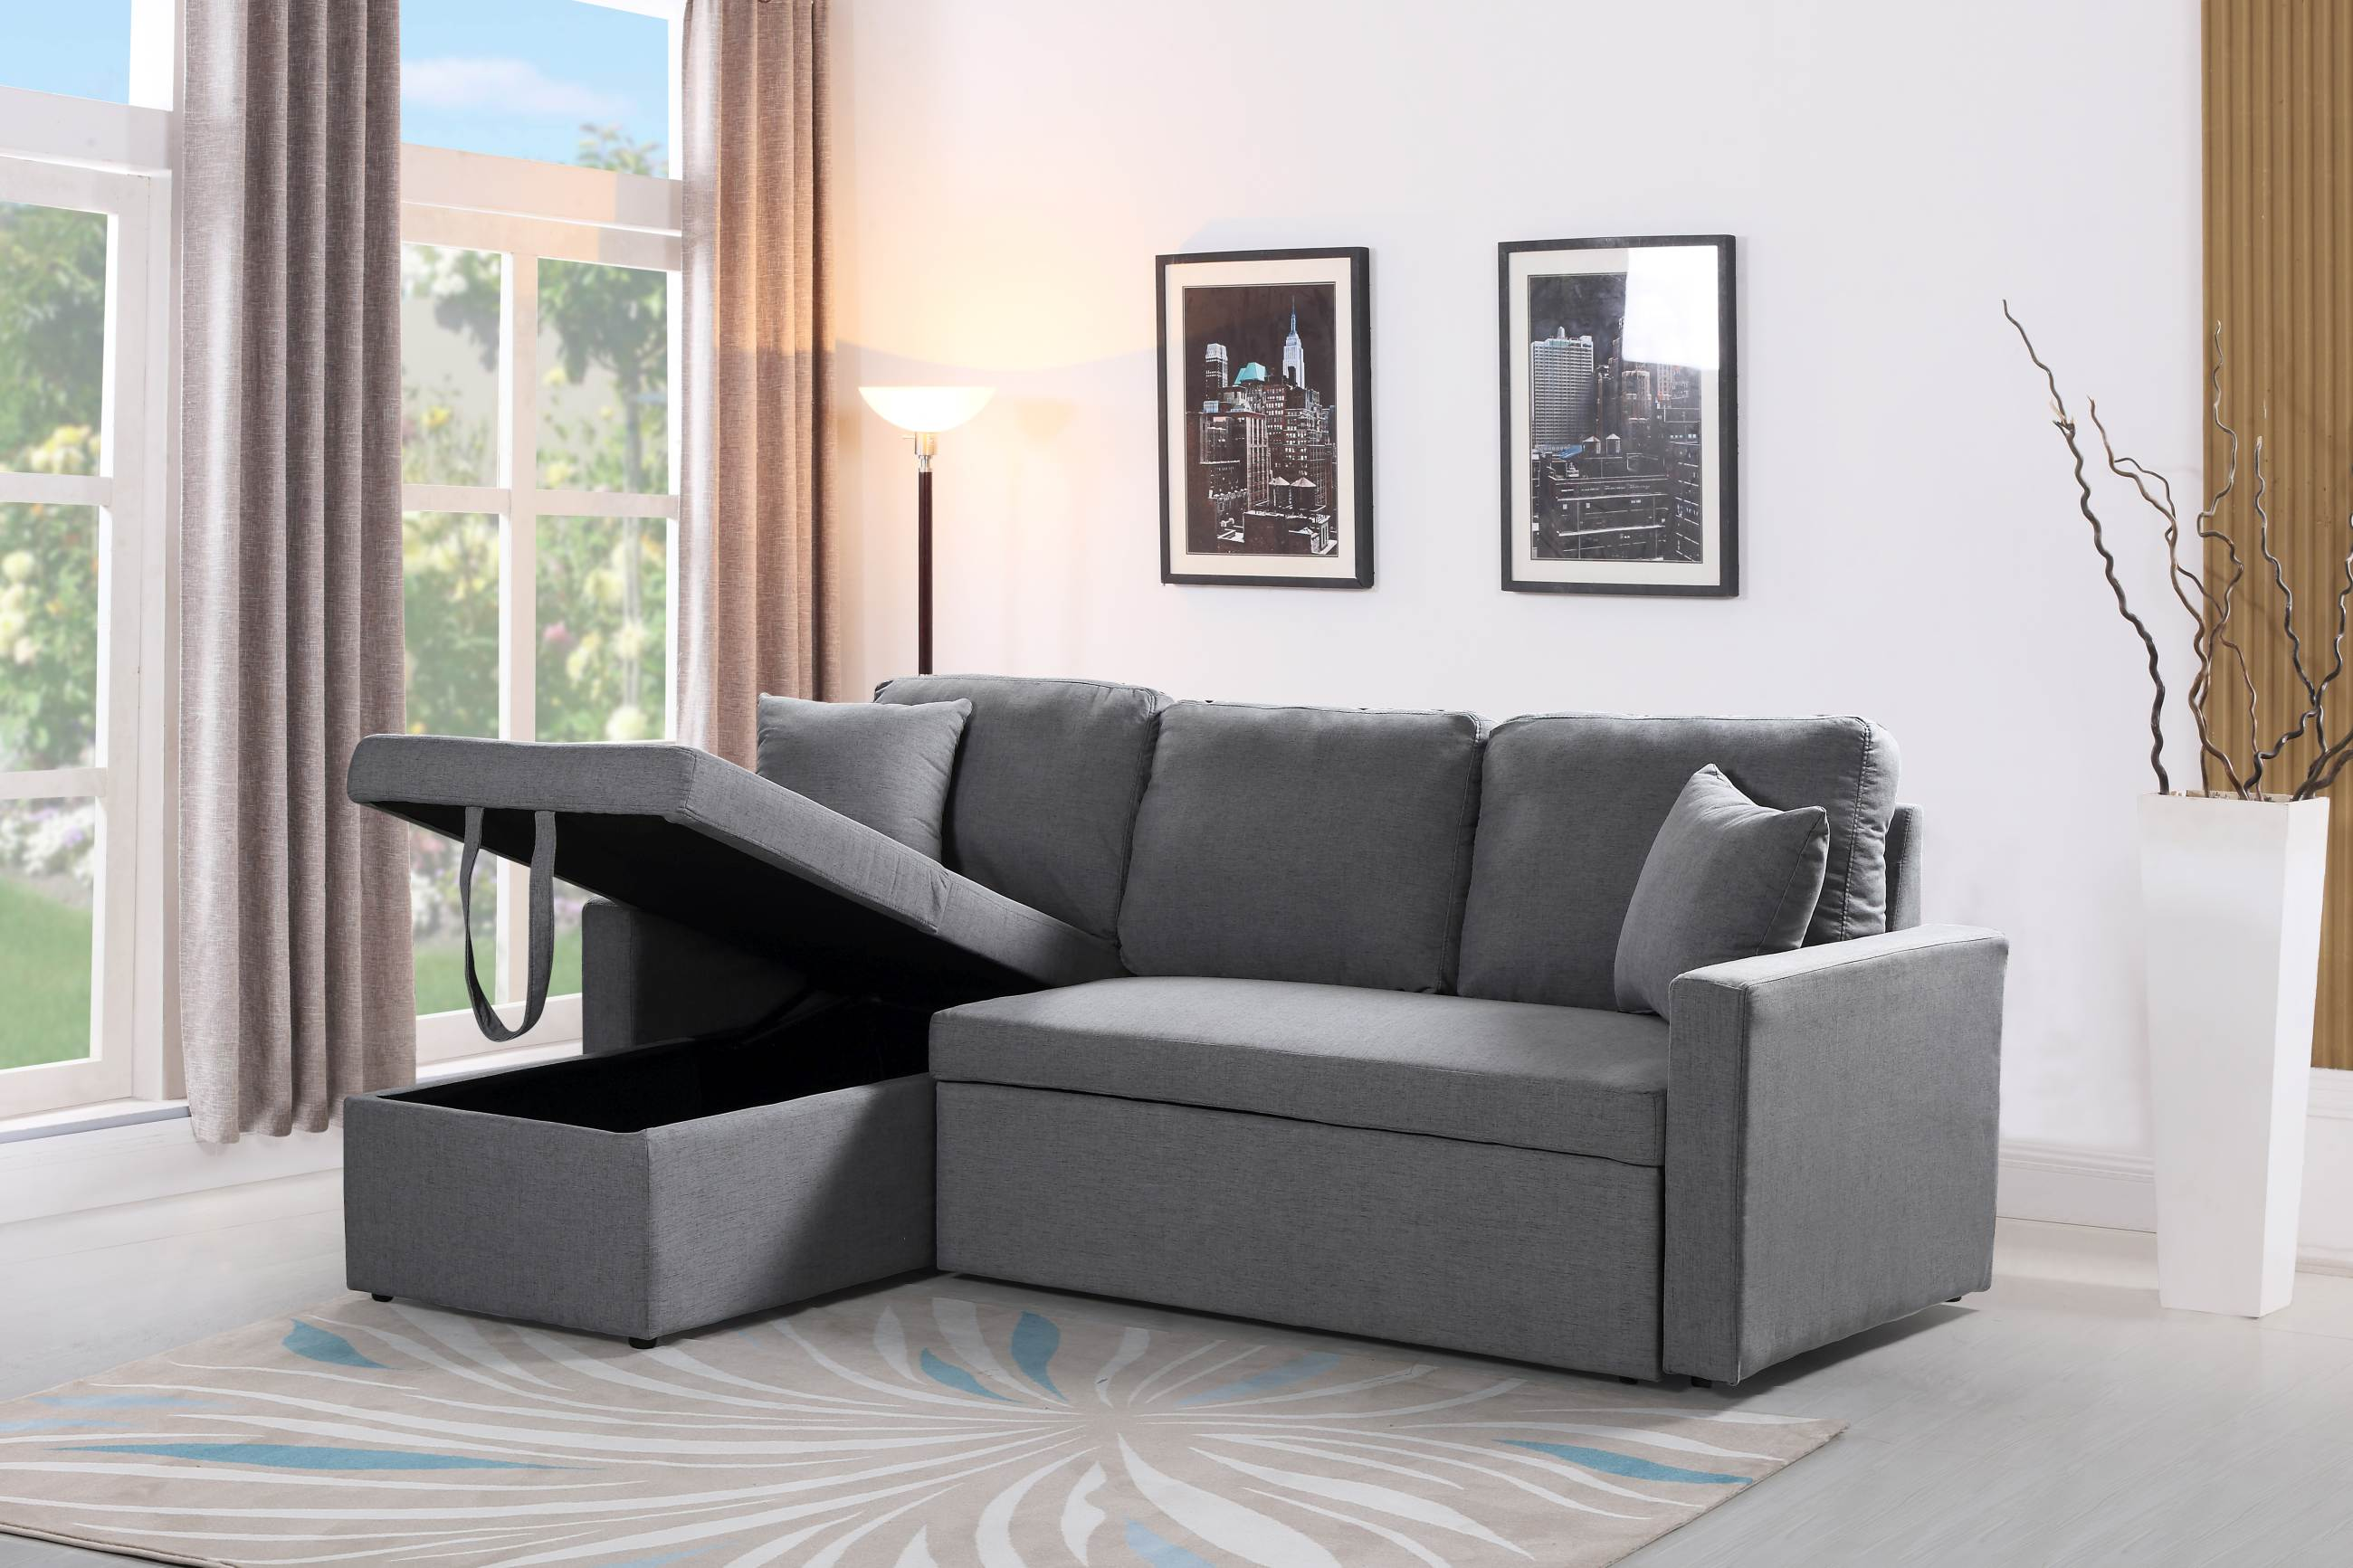 Husky 174 Reversible Sectional Sofa Bed Free Shipping In Canada